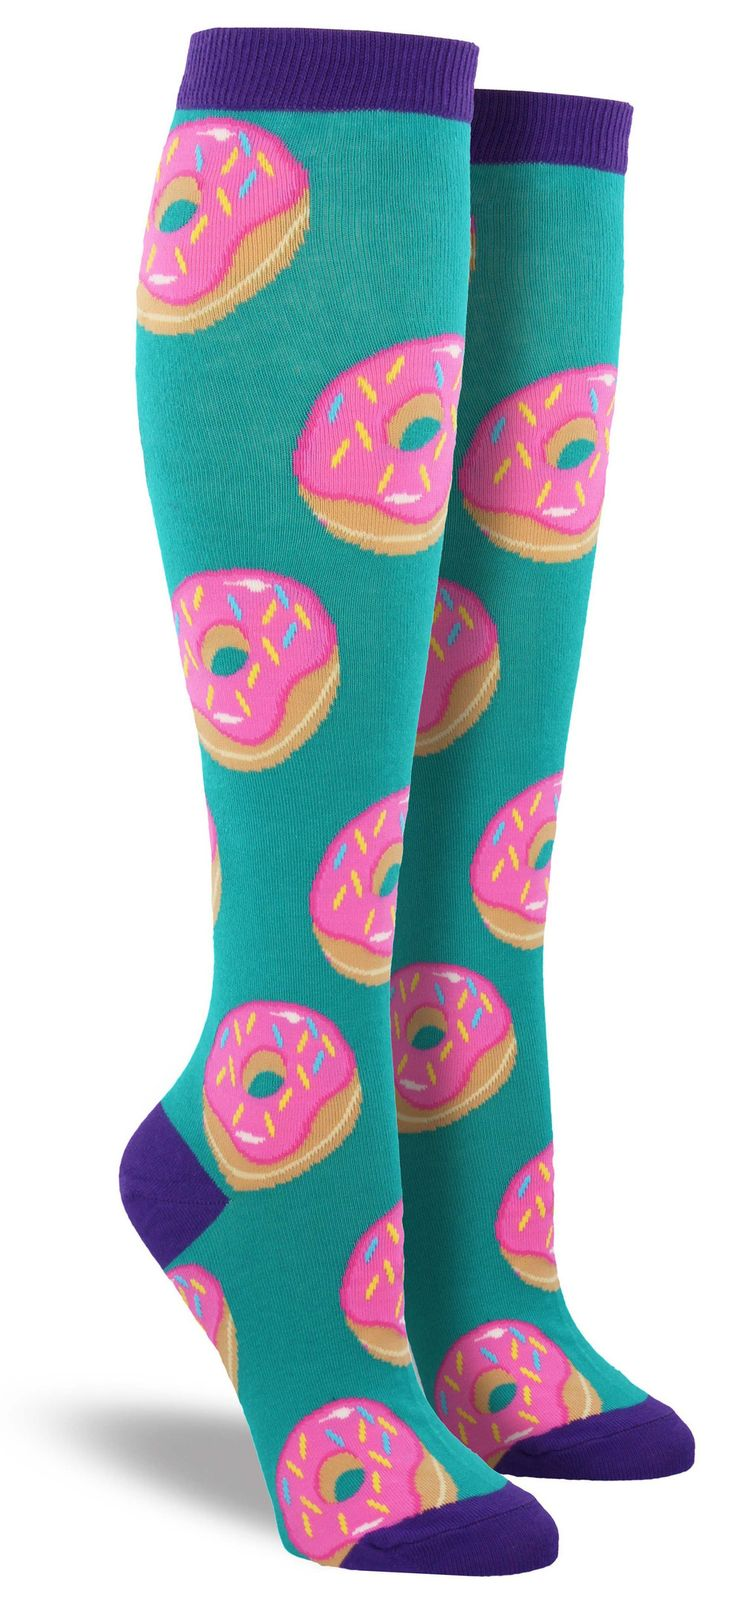 manakamanamobilecenter.tk doesn't only carry the funniest t-shirts, we also carry a large selection of crazy socks! Our sock it to me socks come with creative fun designs, such as caped super hero socks, brightly colored knee high socks, and other fun and whimsical designs.